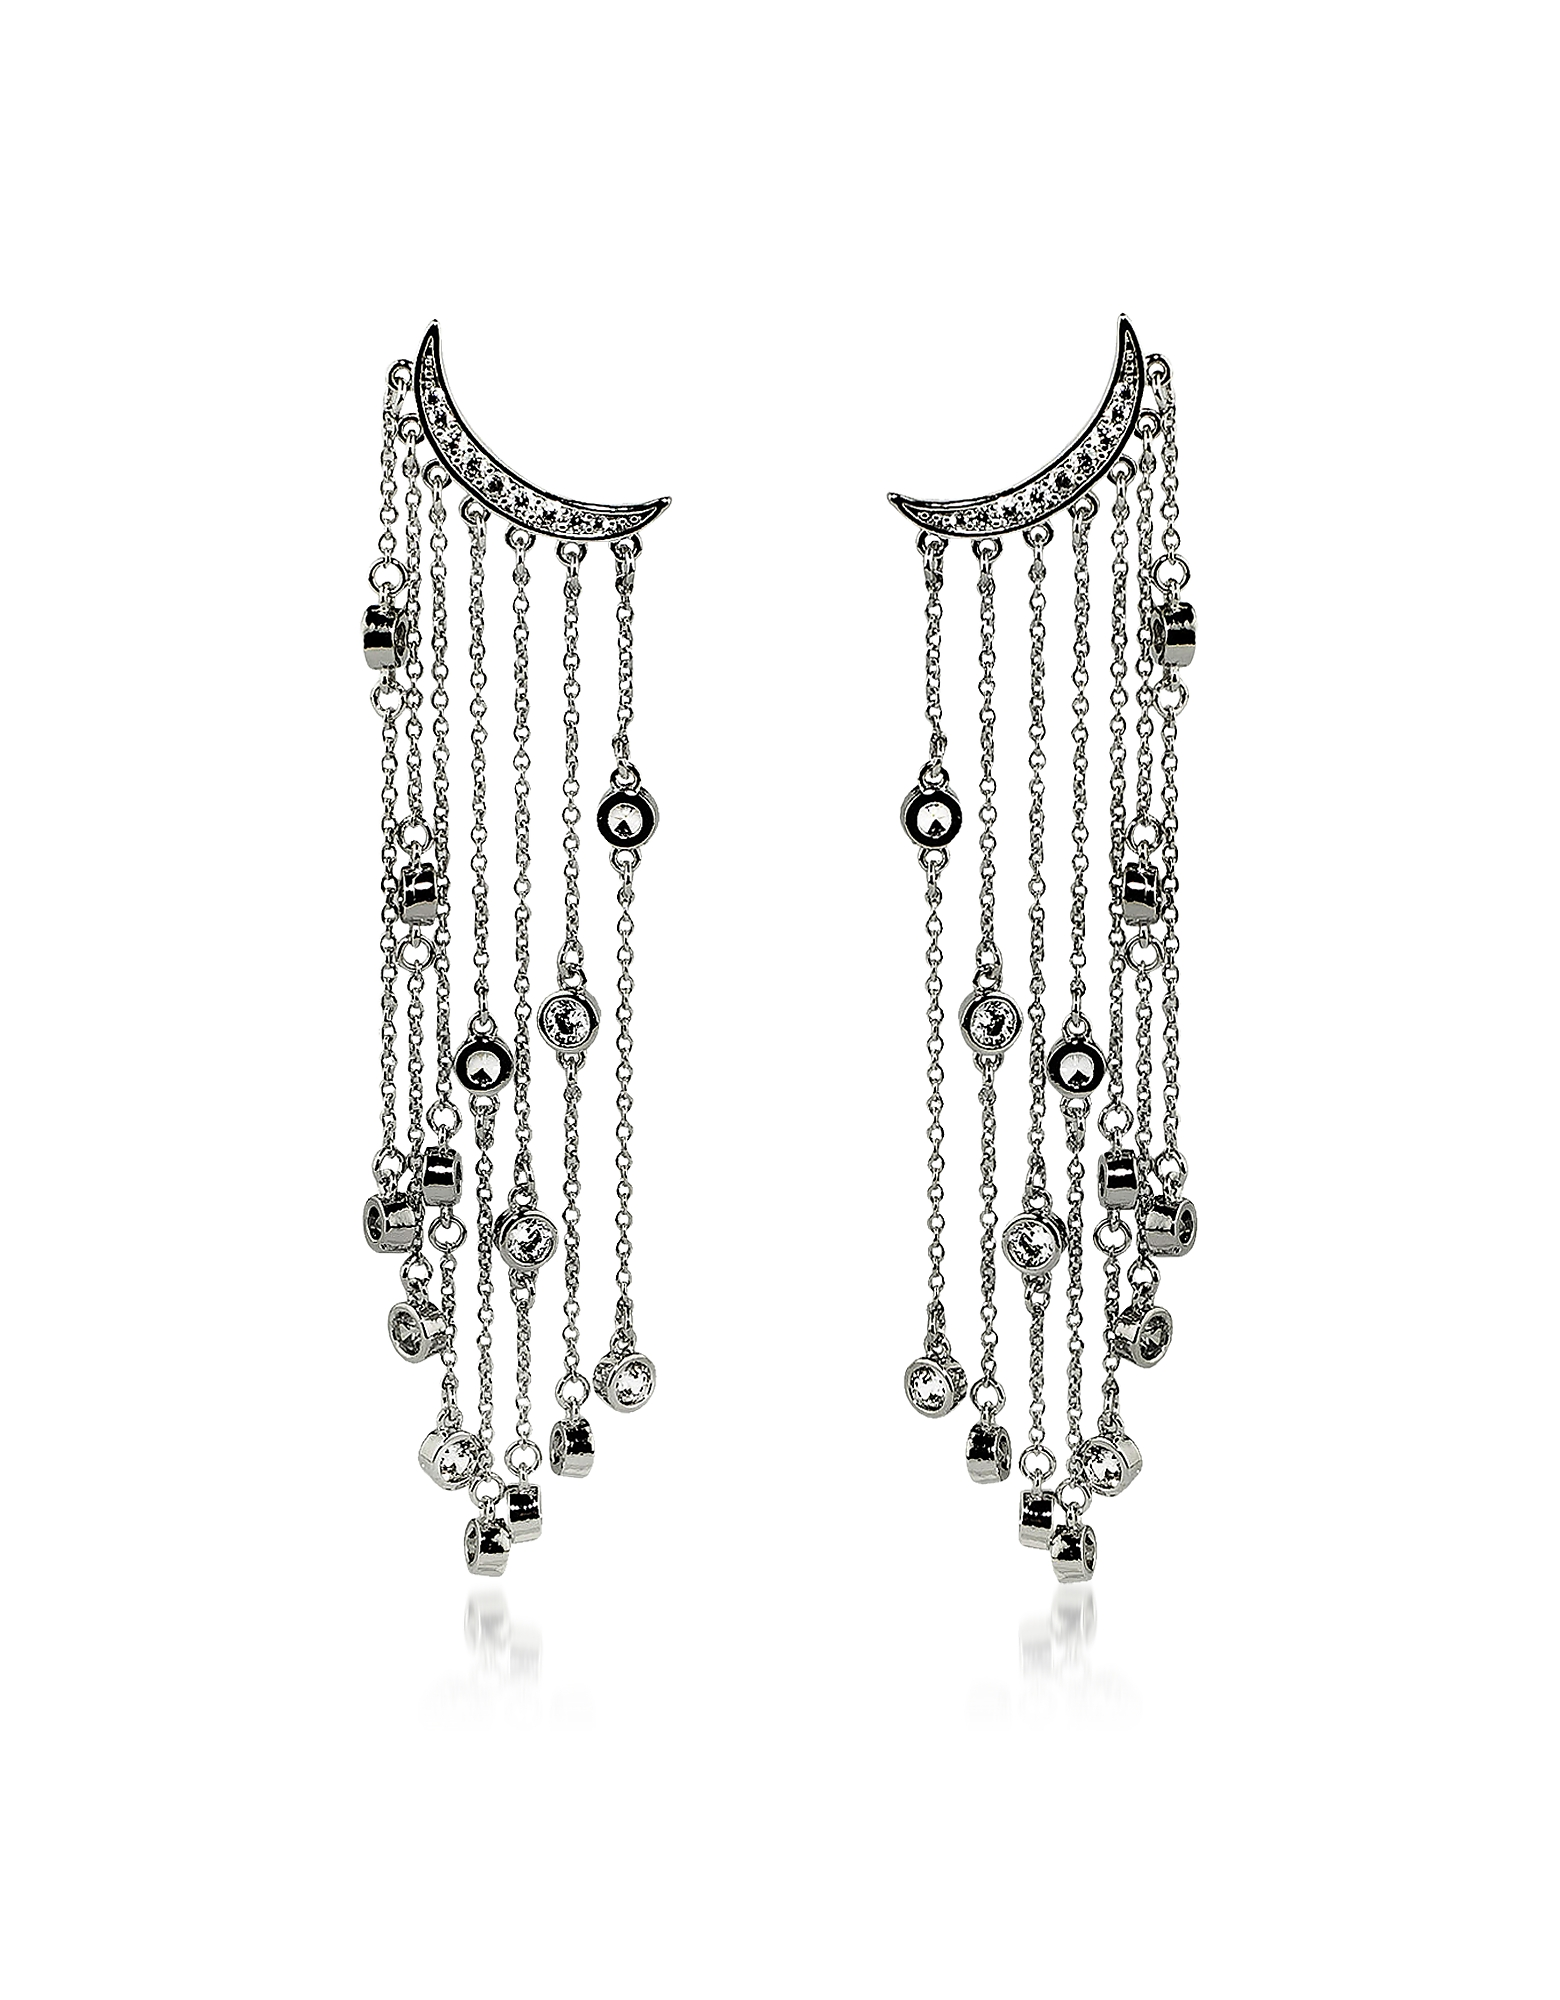 Federica Tosi Designer Earrings, Big Rain Earrings